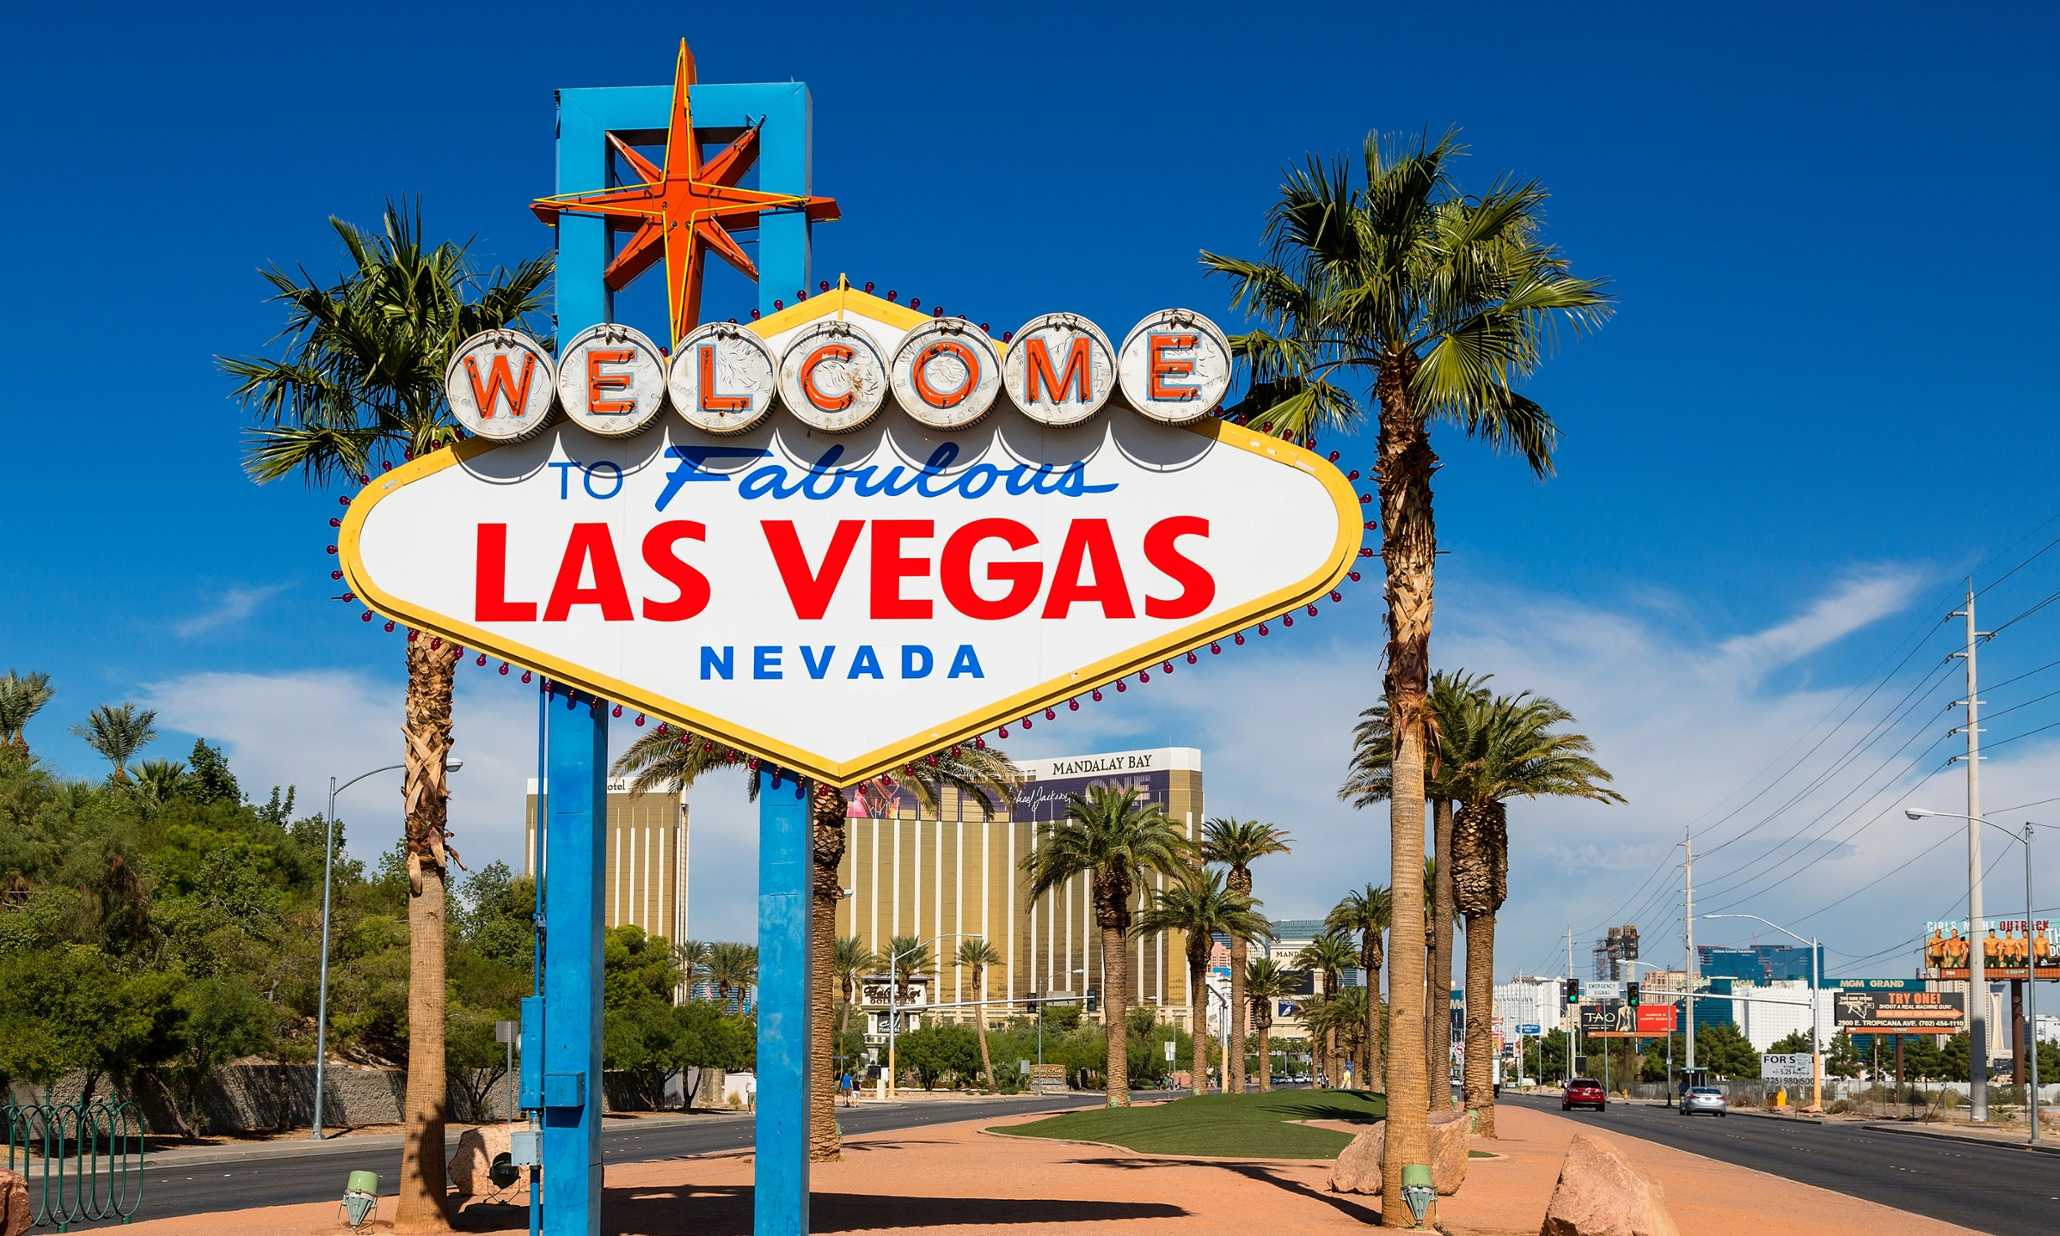 Current RMS is going to infoComm 2016 in LAs Vegas.